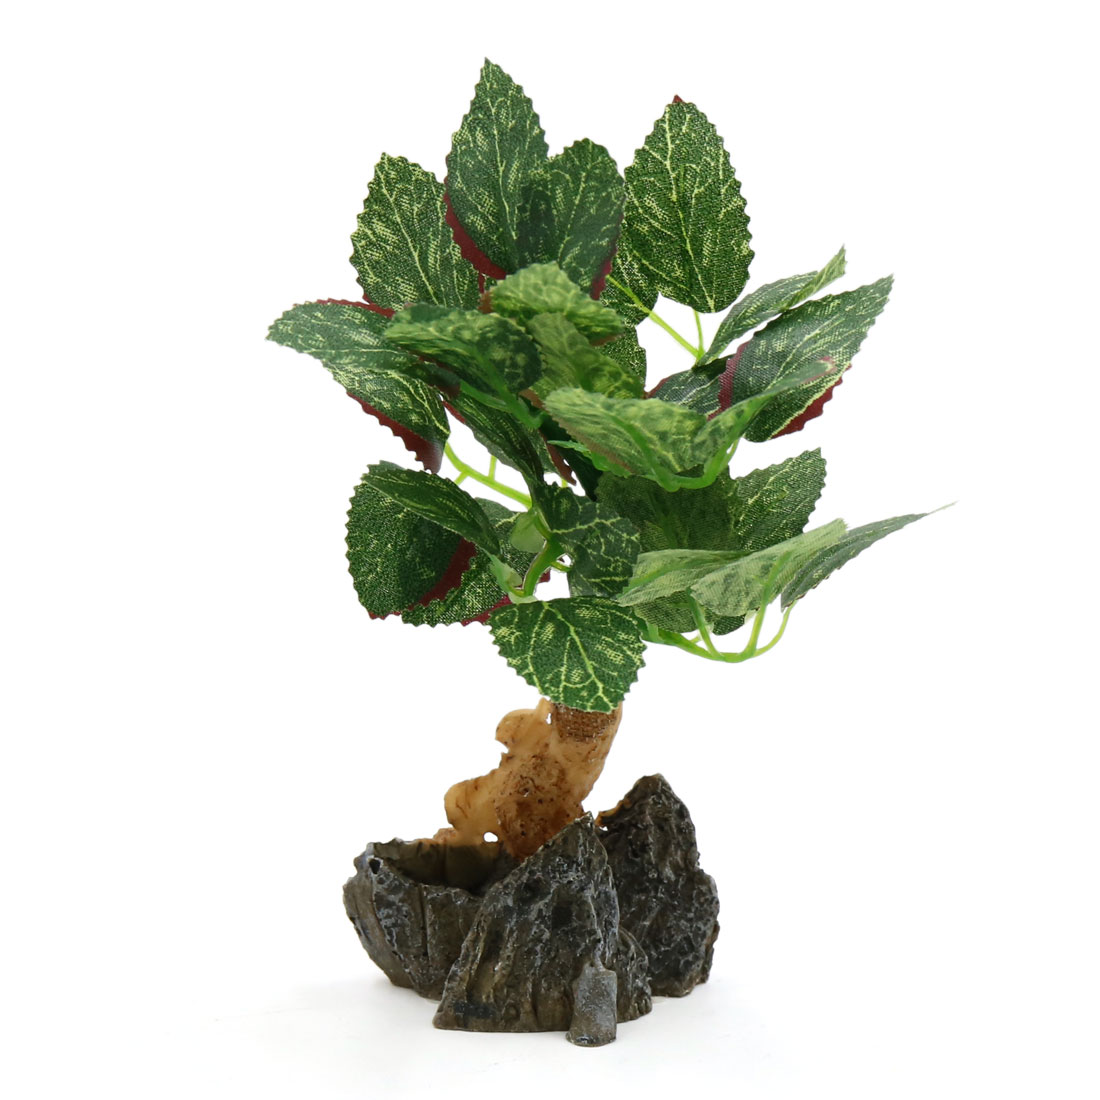 Aquarium Fish Tank Decorative Lifelike Tree Aquascape Ornament w/ Resin Base